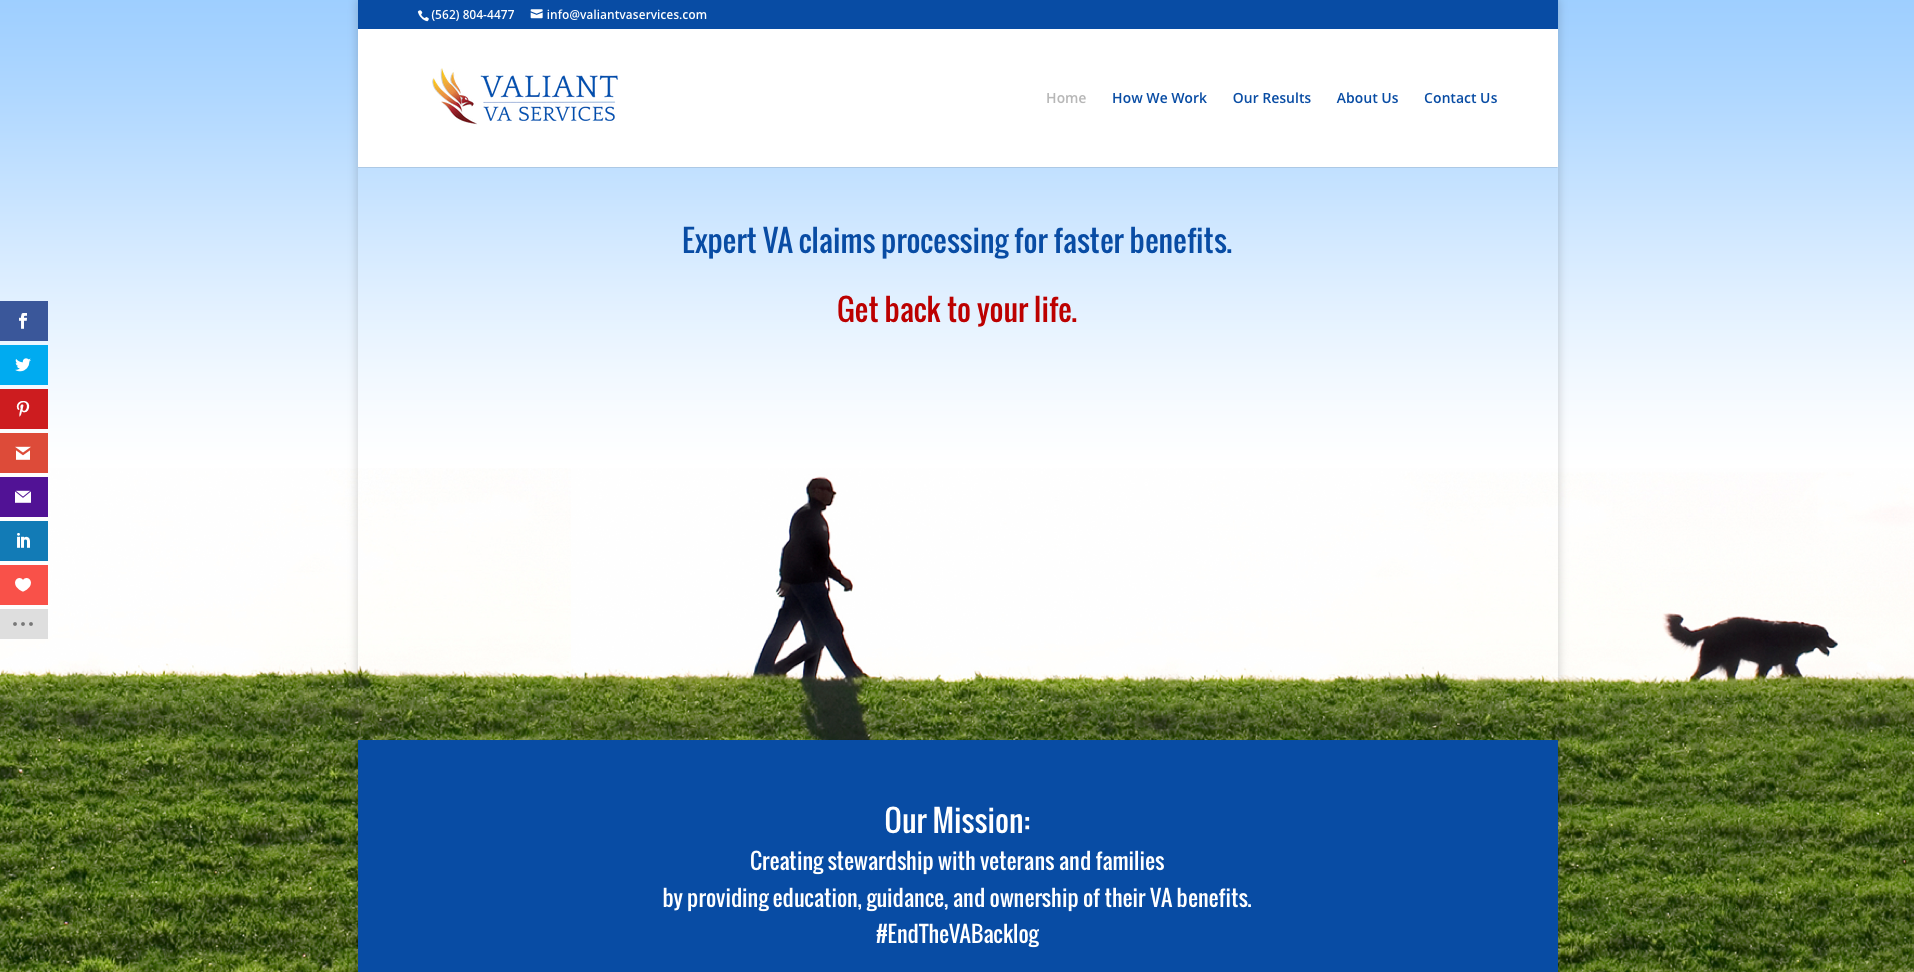 Valiant VA Services - Another Awesome qualiant project